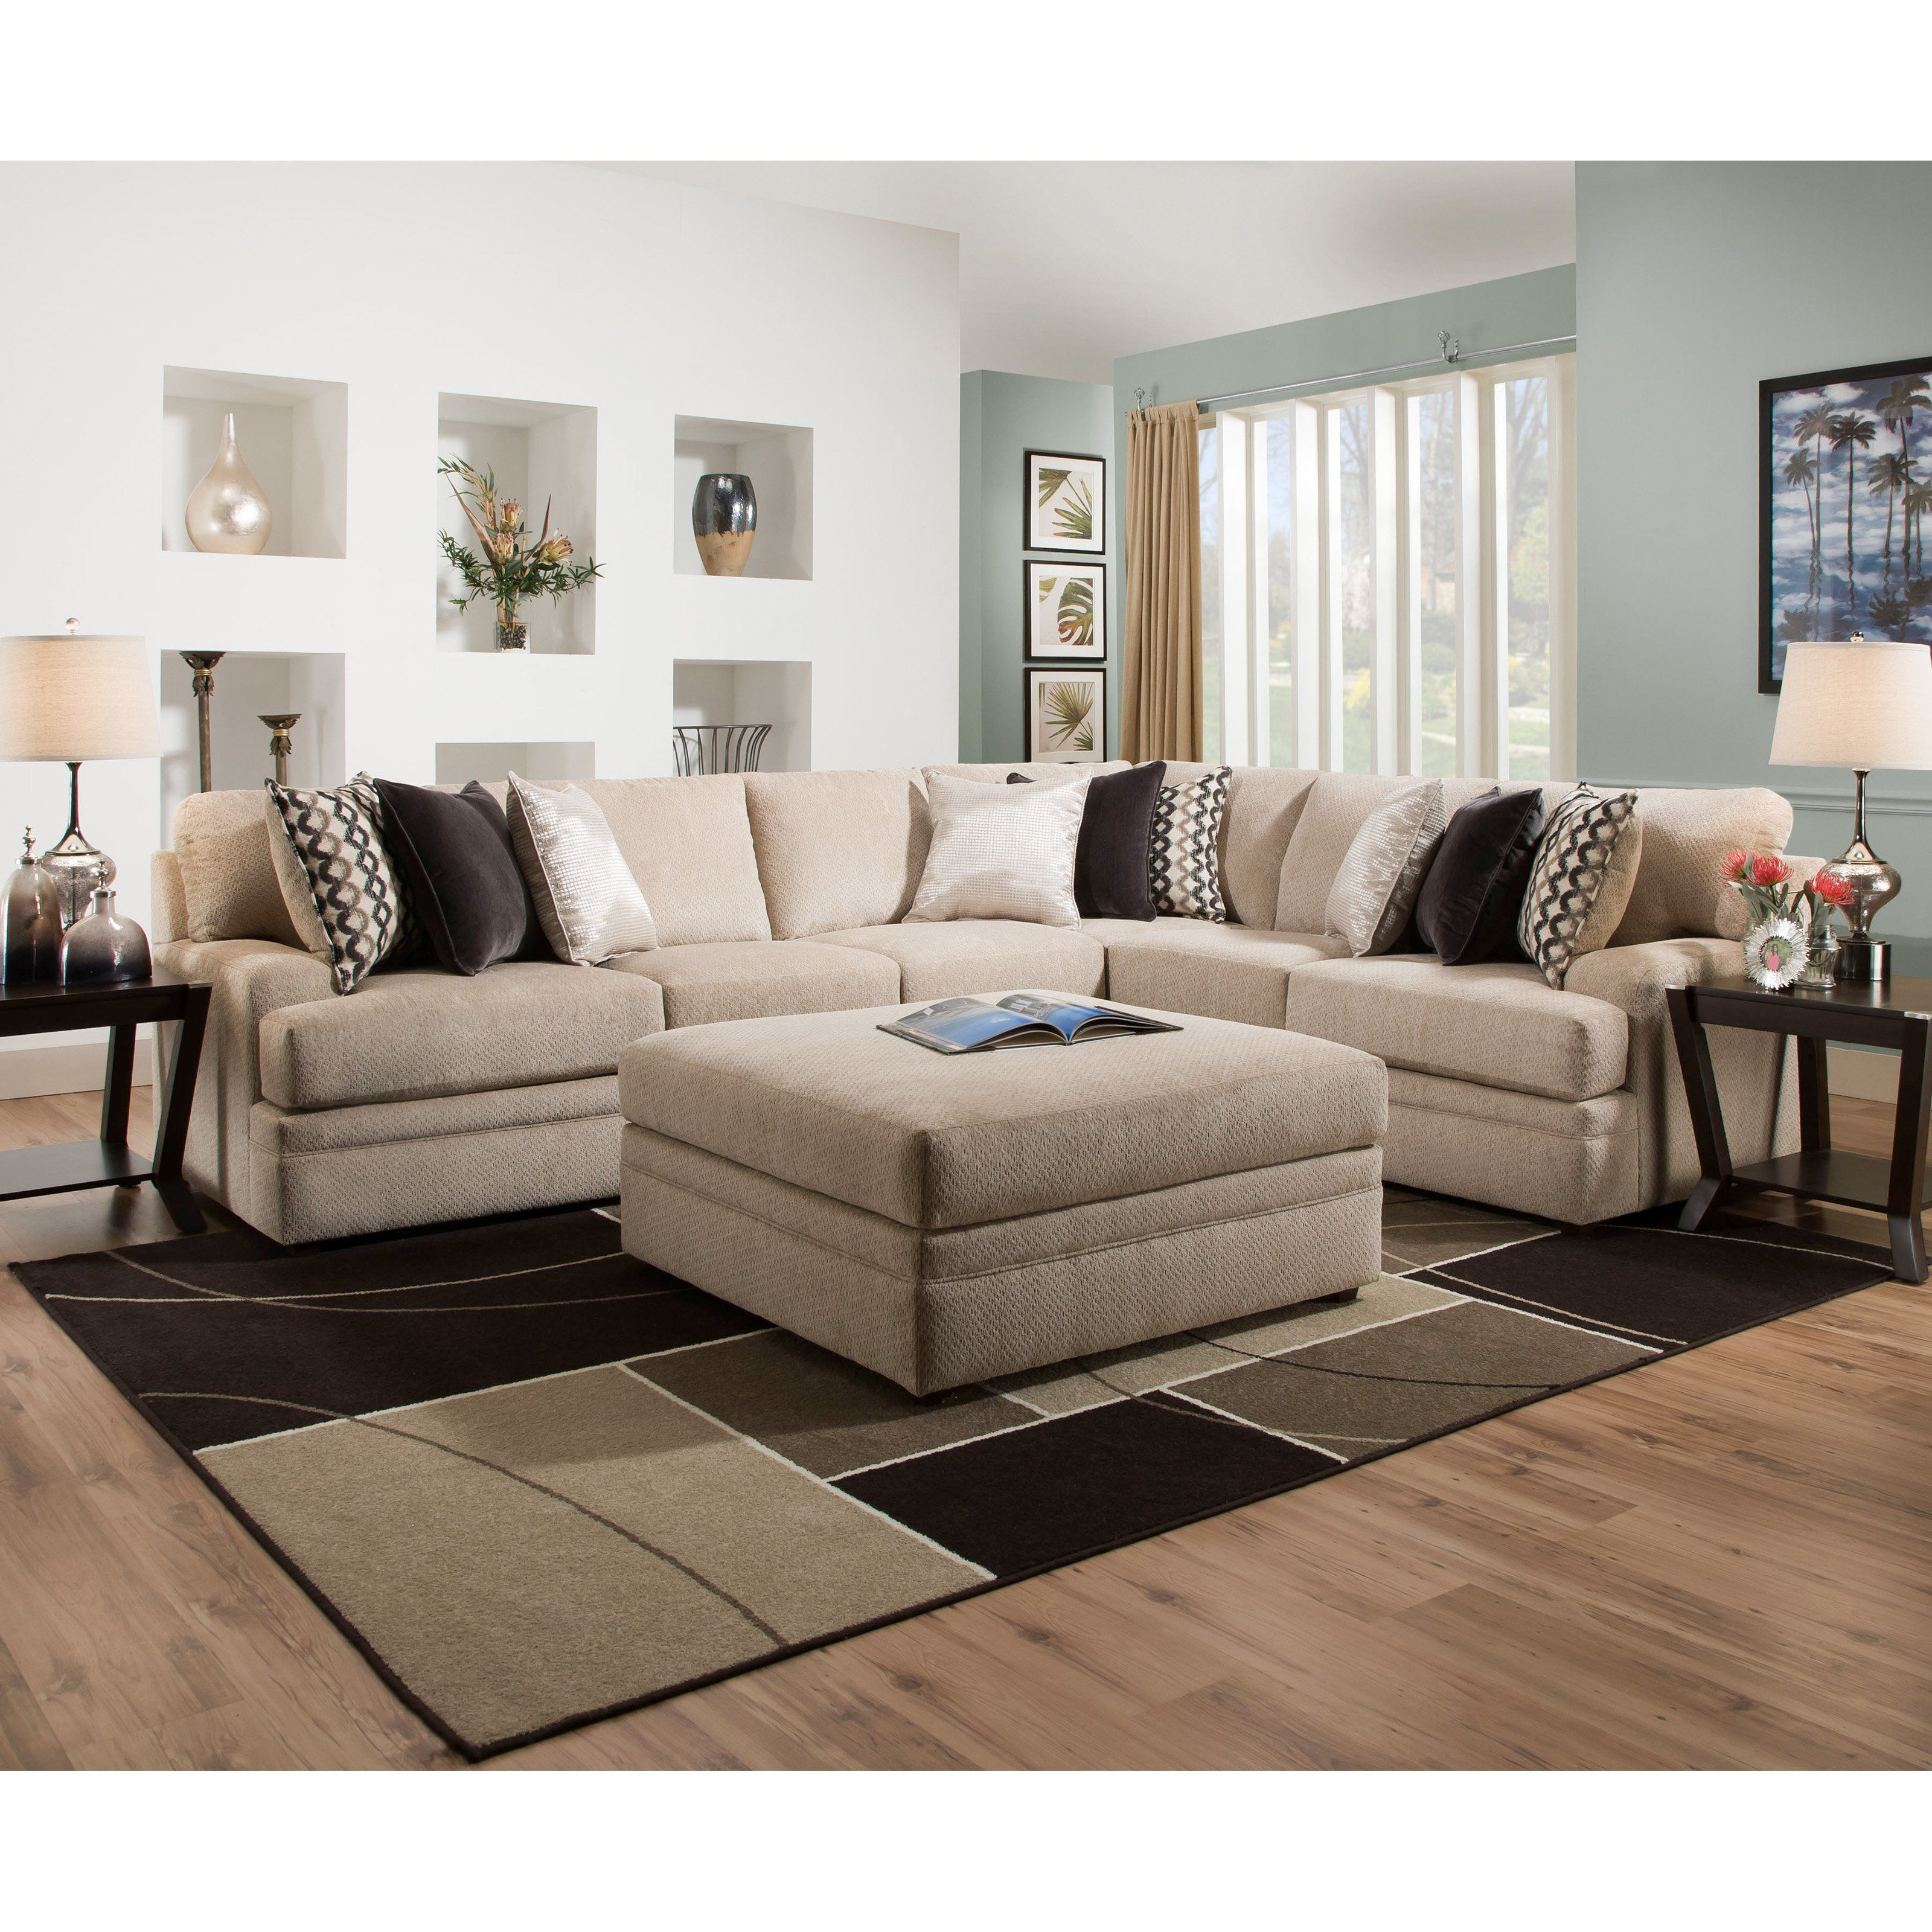 Simmons Upholstery Bellamy Putty Sectional Udf491 Furniture Living Room Furniture Living Room Sets